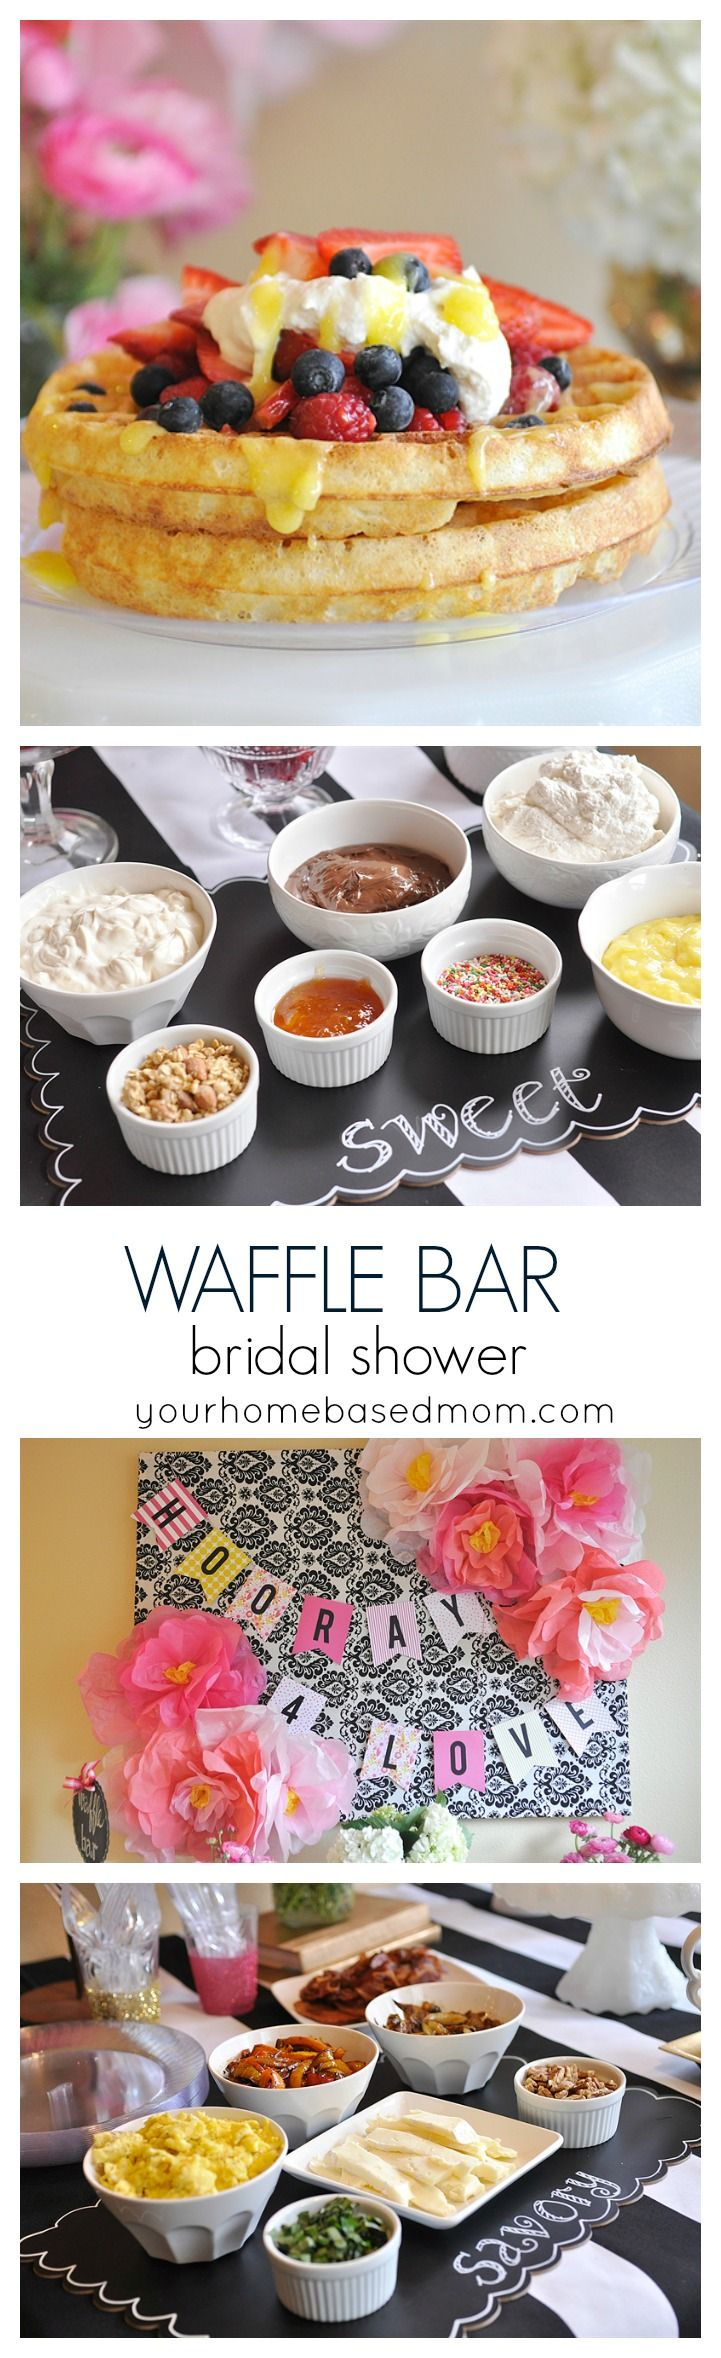 Throw a Waffle Bar Bridal Shower! Lots of sweet and savory toppings. Using CHINET® CUT CRYSTAL® makes clean up a breeze! #ad #BH @yourhomebasedmom.com